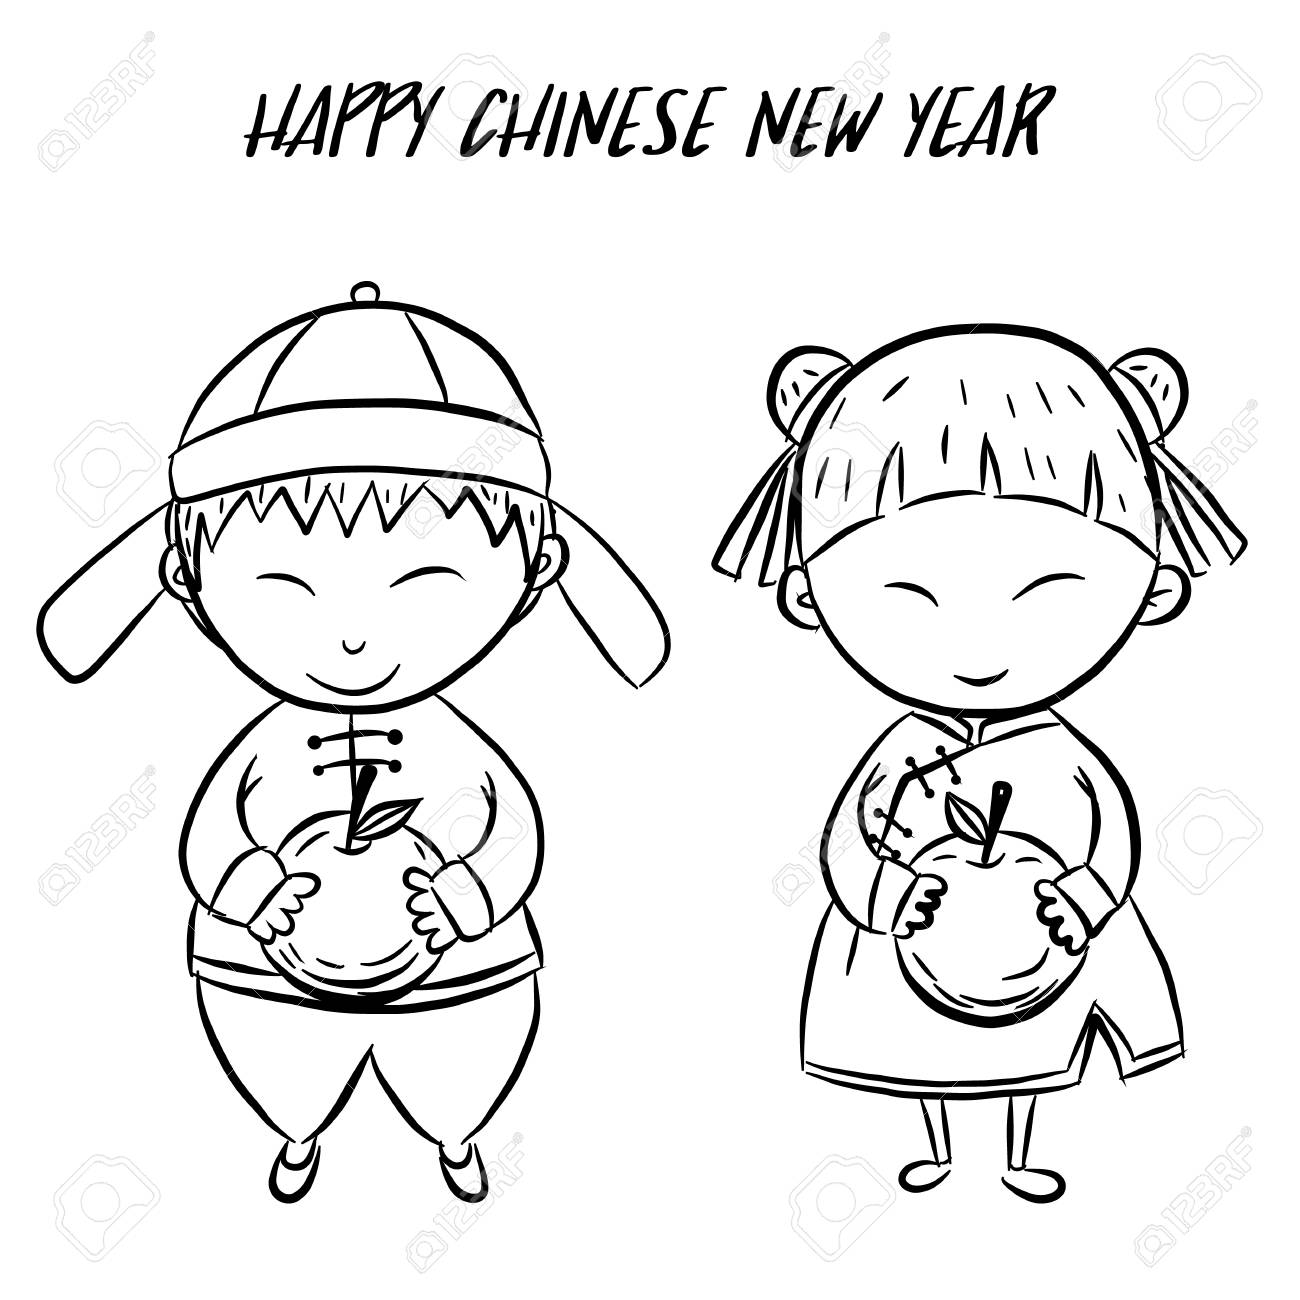 Happy chinese new year by hand drawing.Boy and girl holding orange...